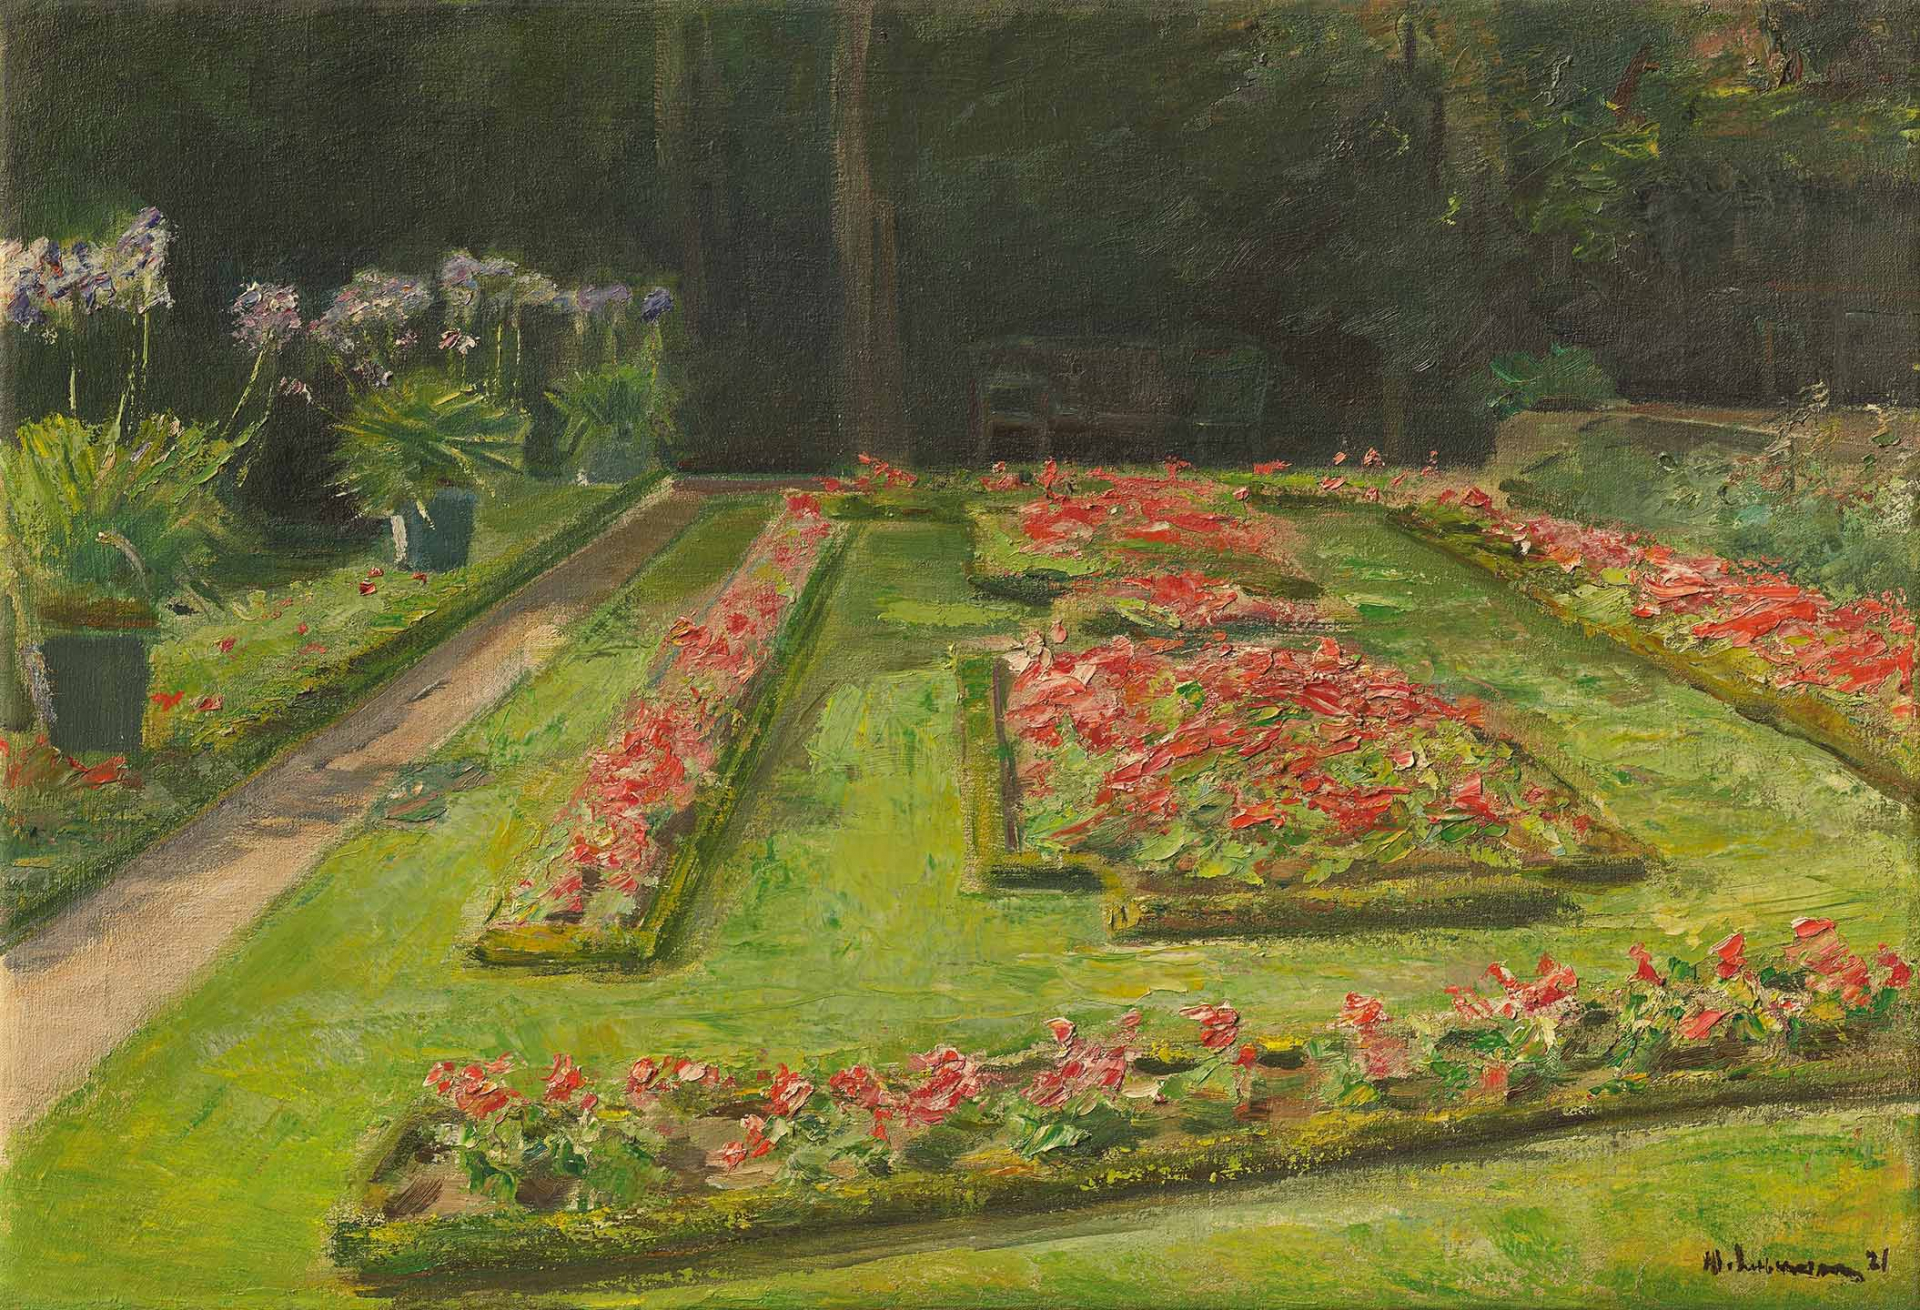 Painting of a garden